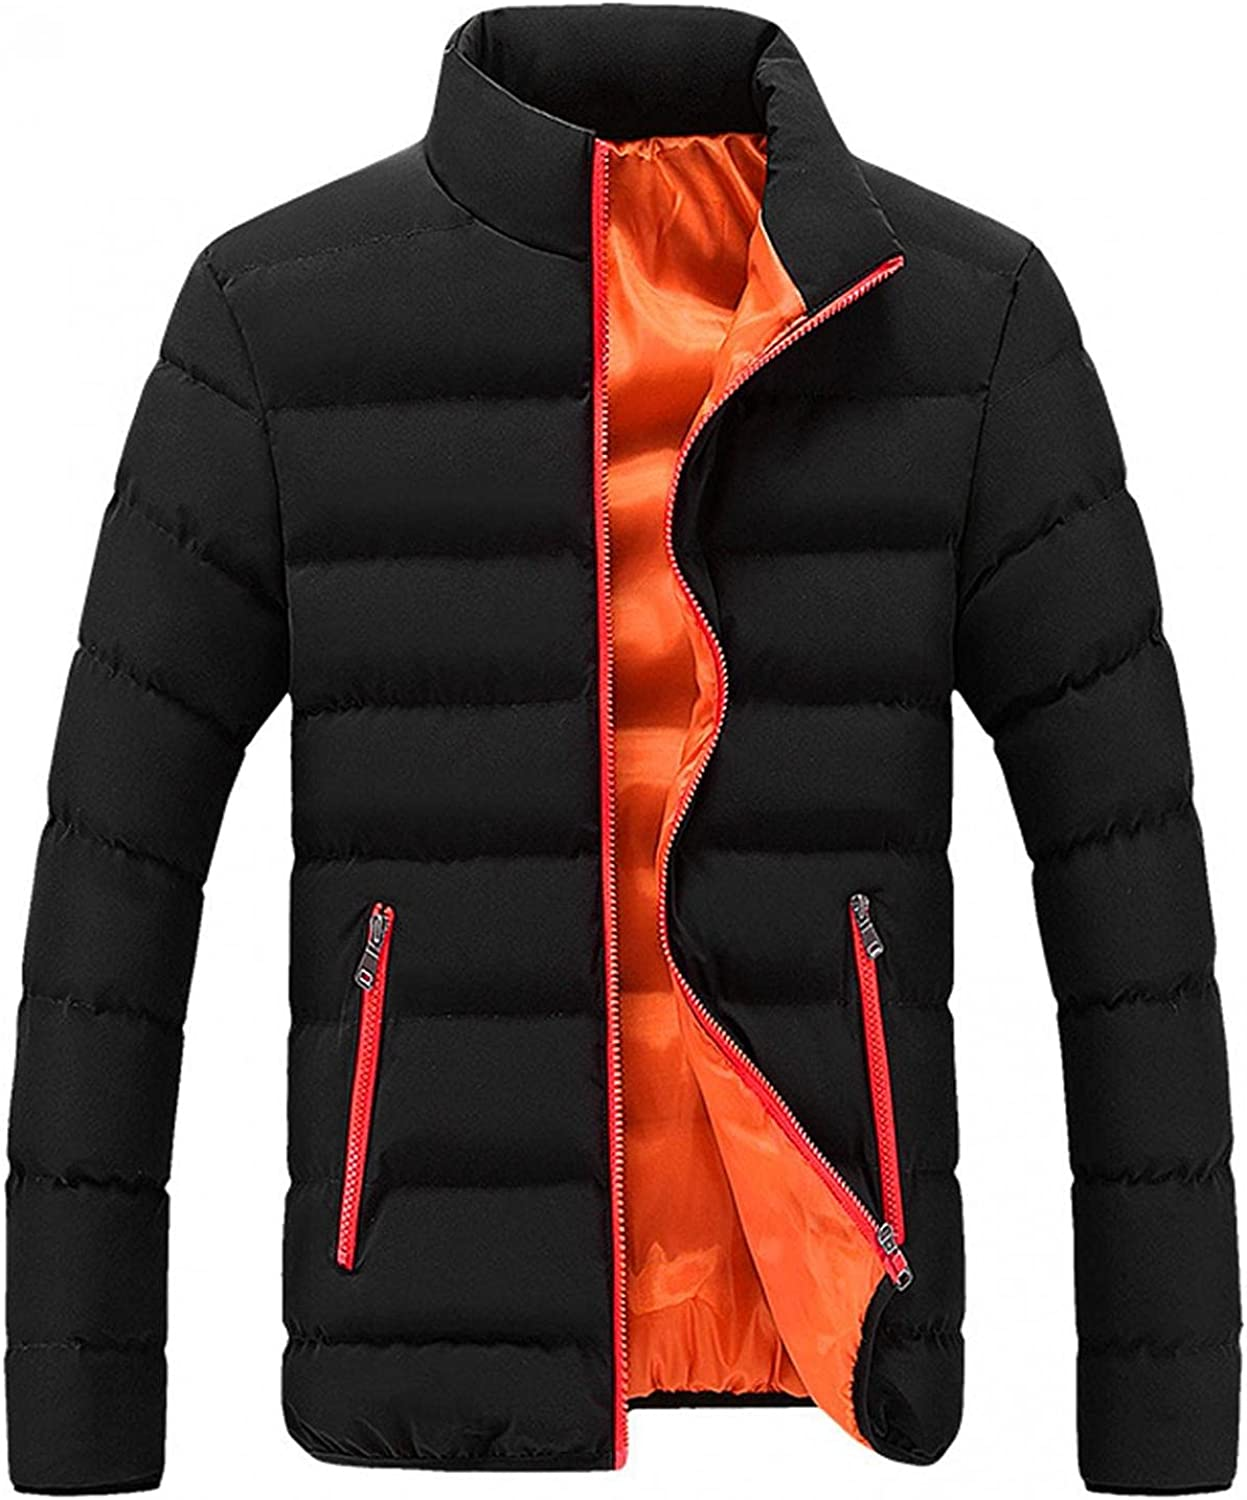 XUNFUN Men's Lightweight Packable Down Jackets Classic Fit Breathable Quilted Puffer Jacket Full Zip Thermal Winter Coat